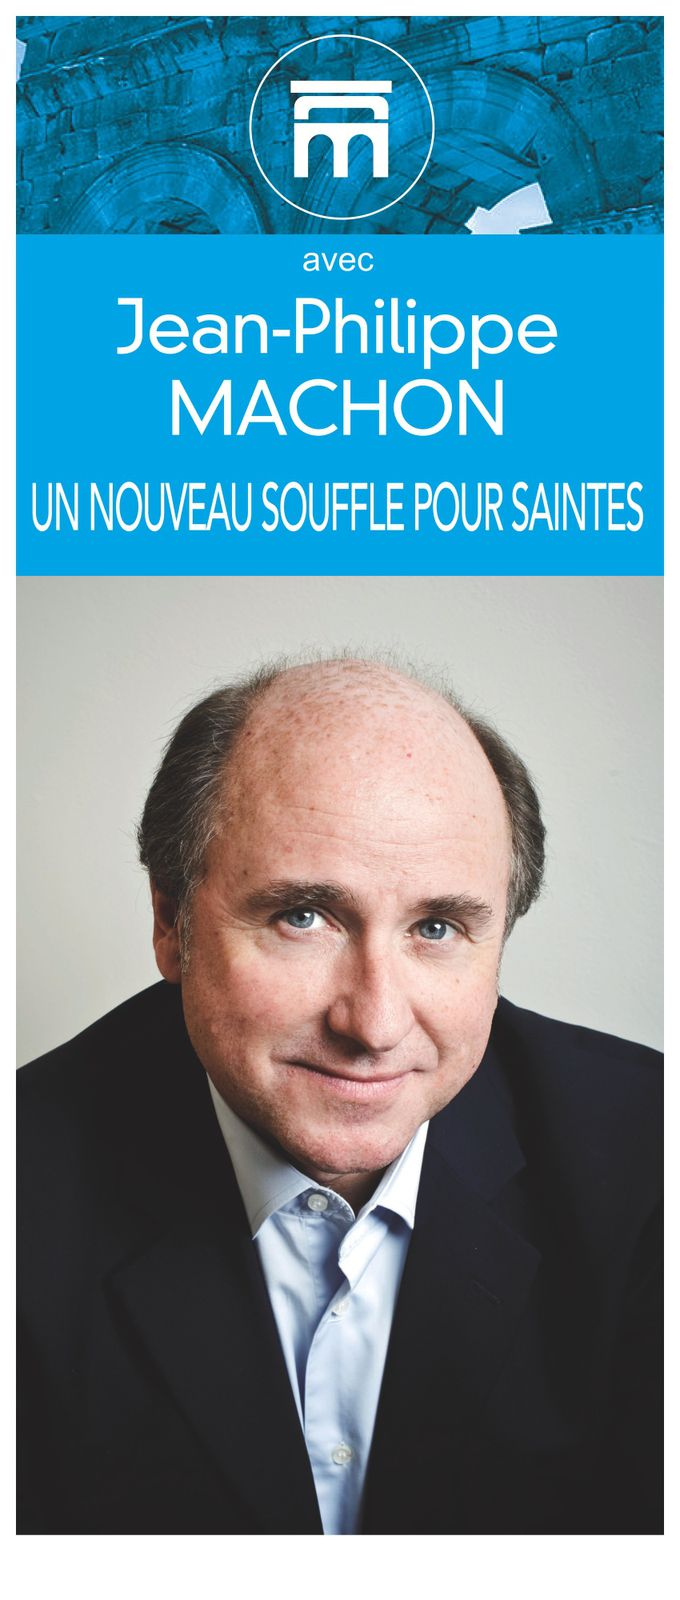 jean-philippe MACHON municipales saintes 2014